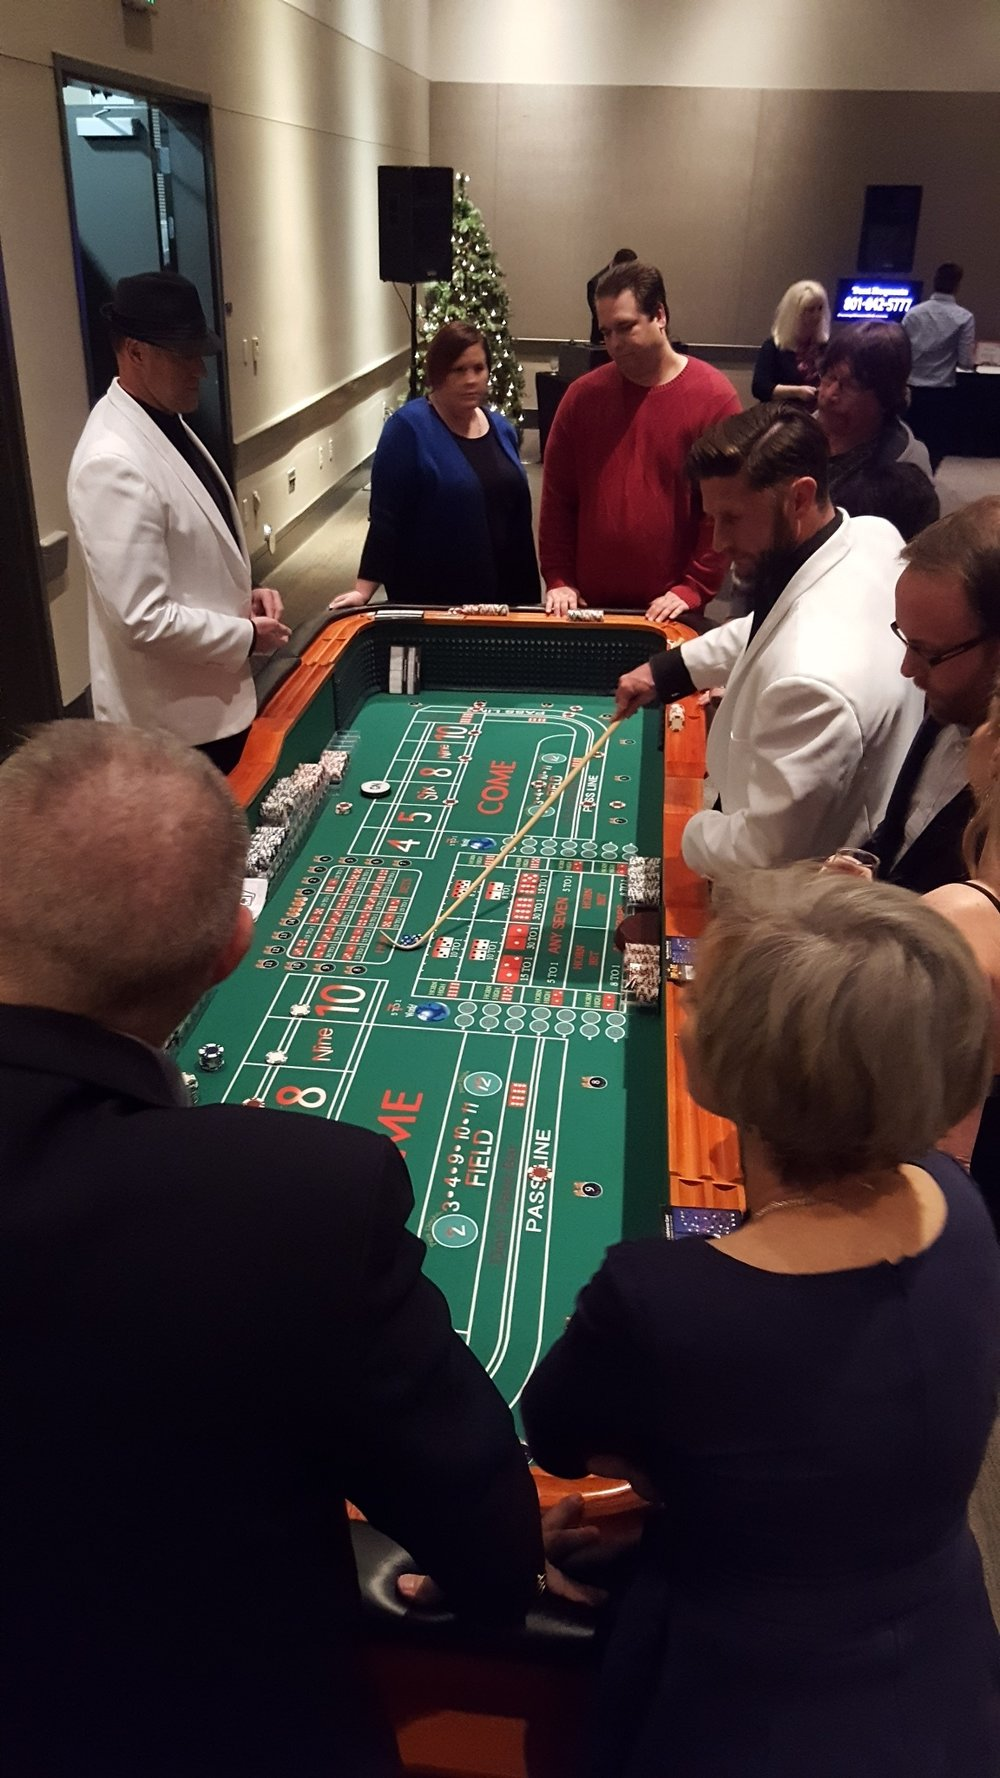 Full Sized Green Craps Table